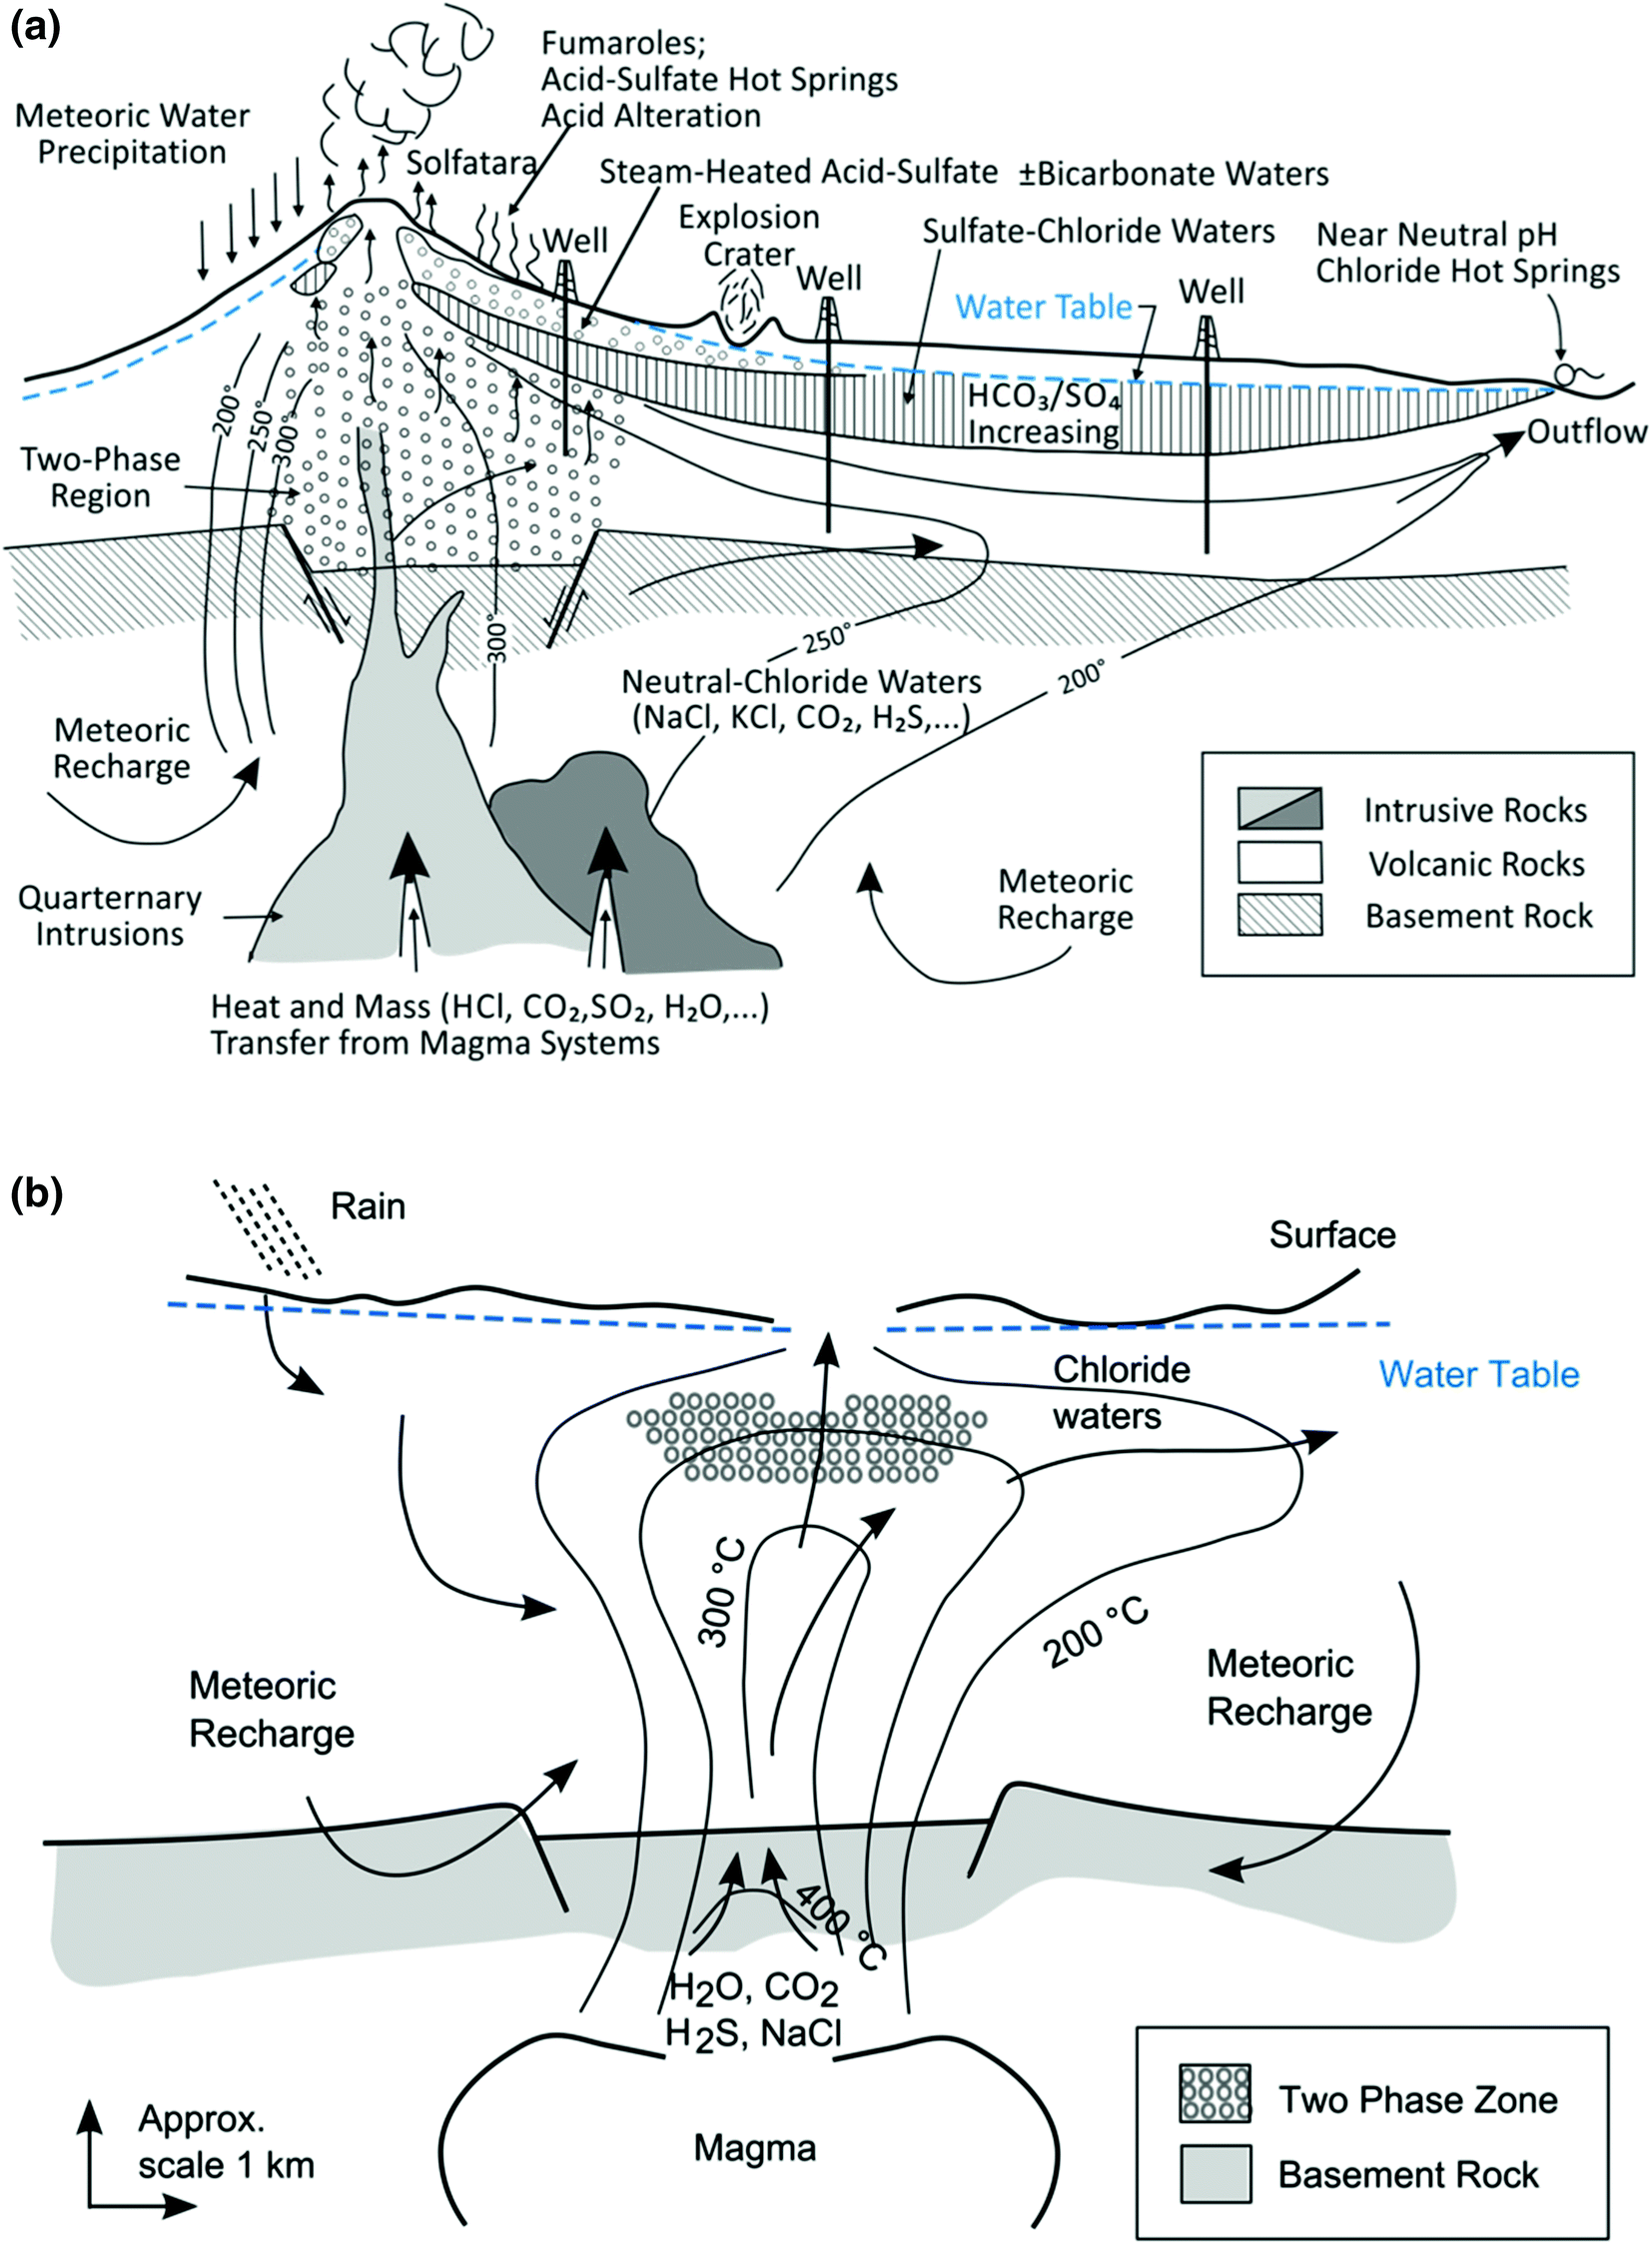 Groundwater Flow And Volcanic Unrest Springerlink Volcanoes Form Moreover Posite Diagram On Magma Open Image In New Window